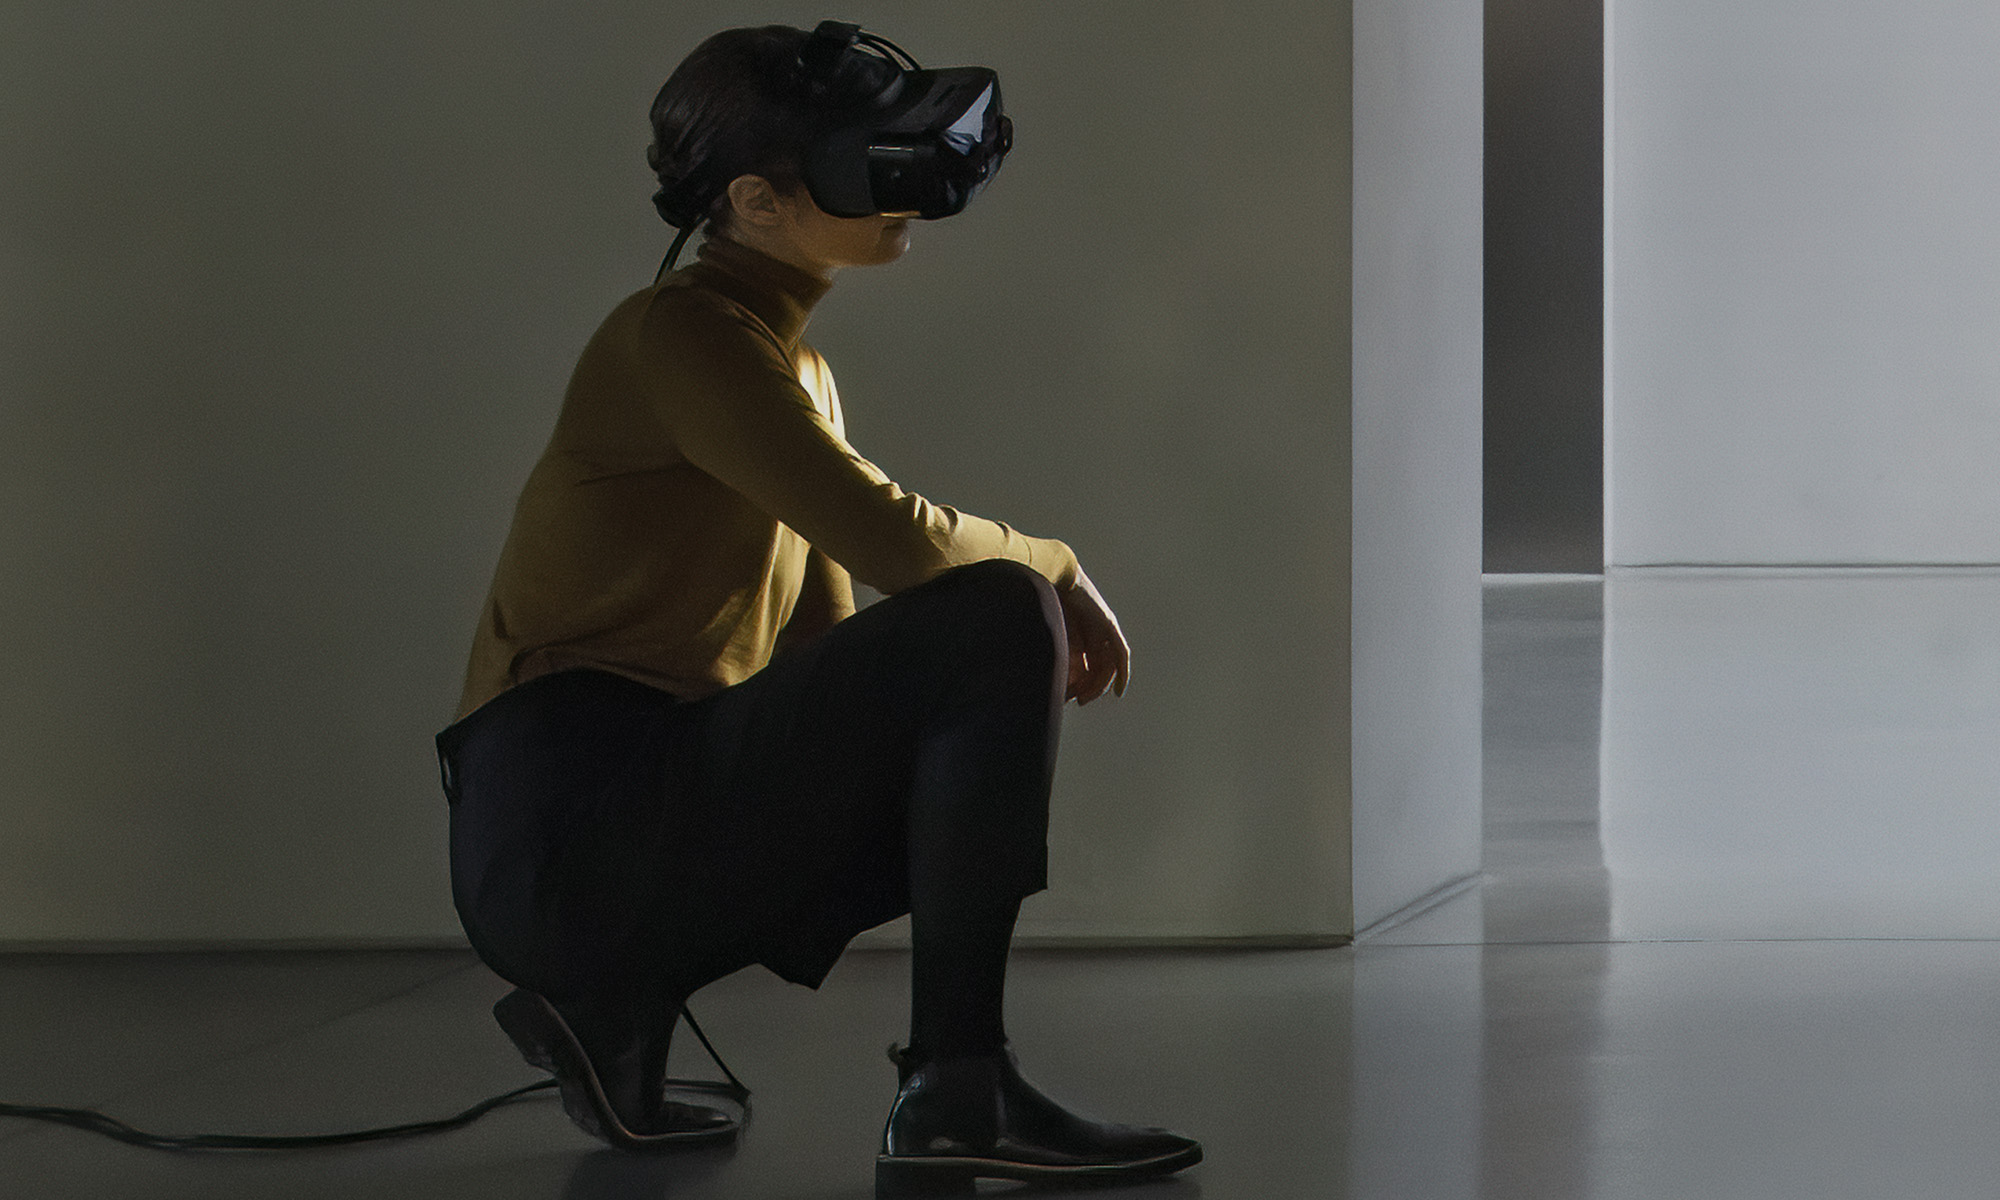 woman in brown shirt wearing Varjo mixed reality headset